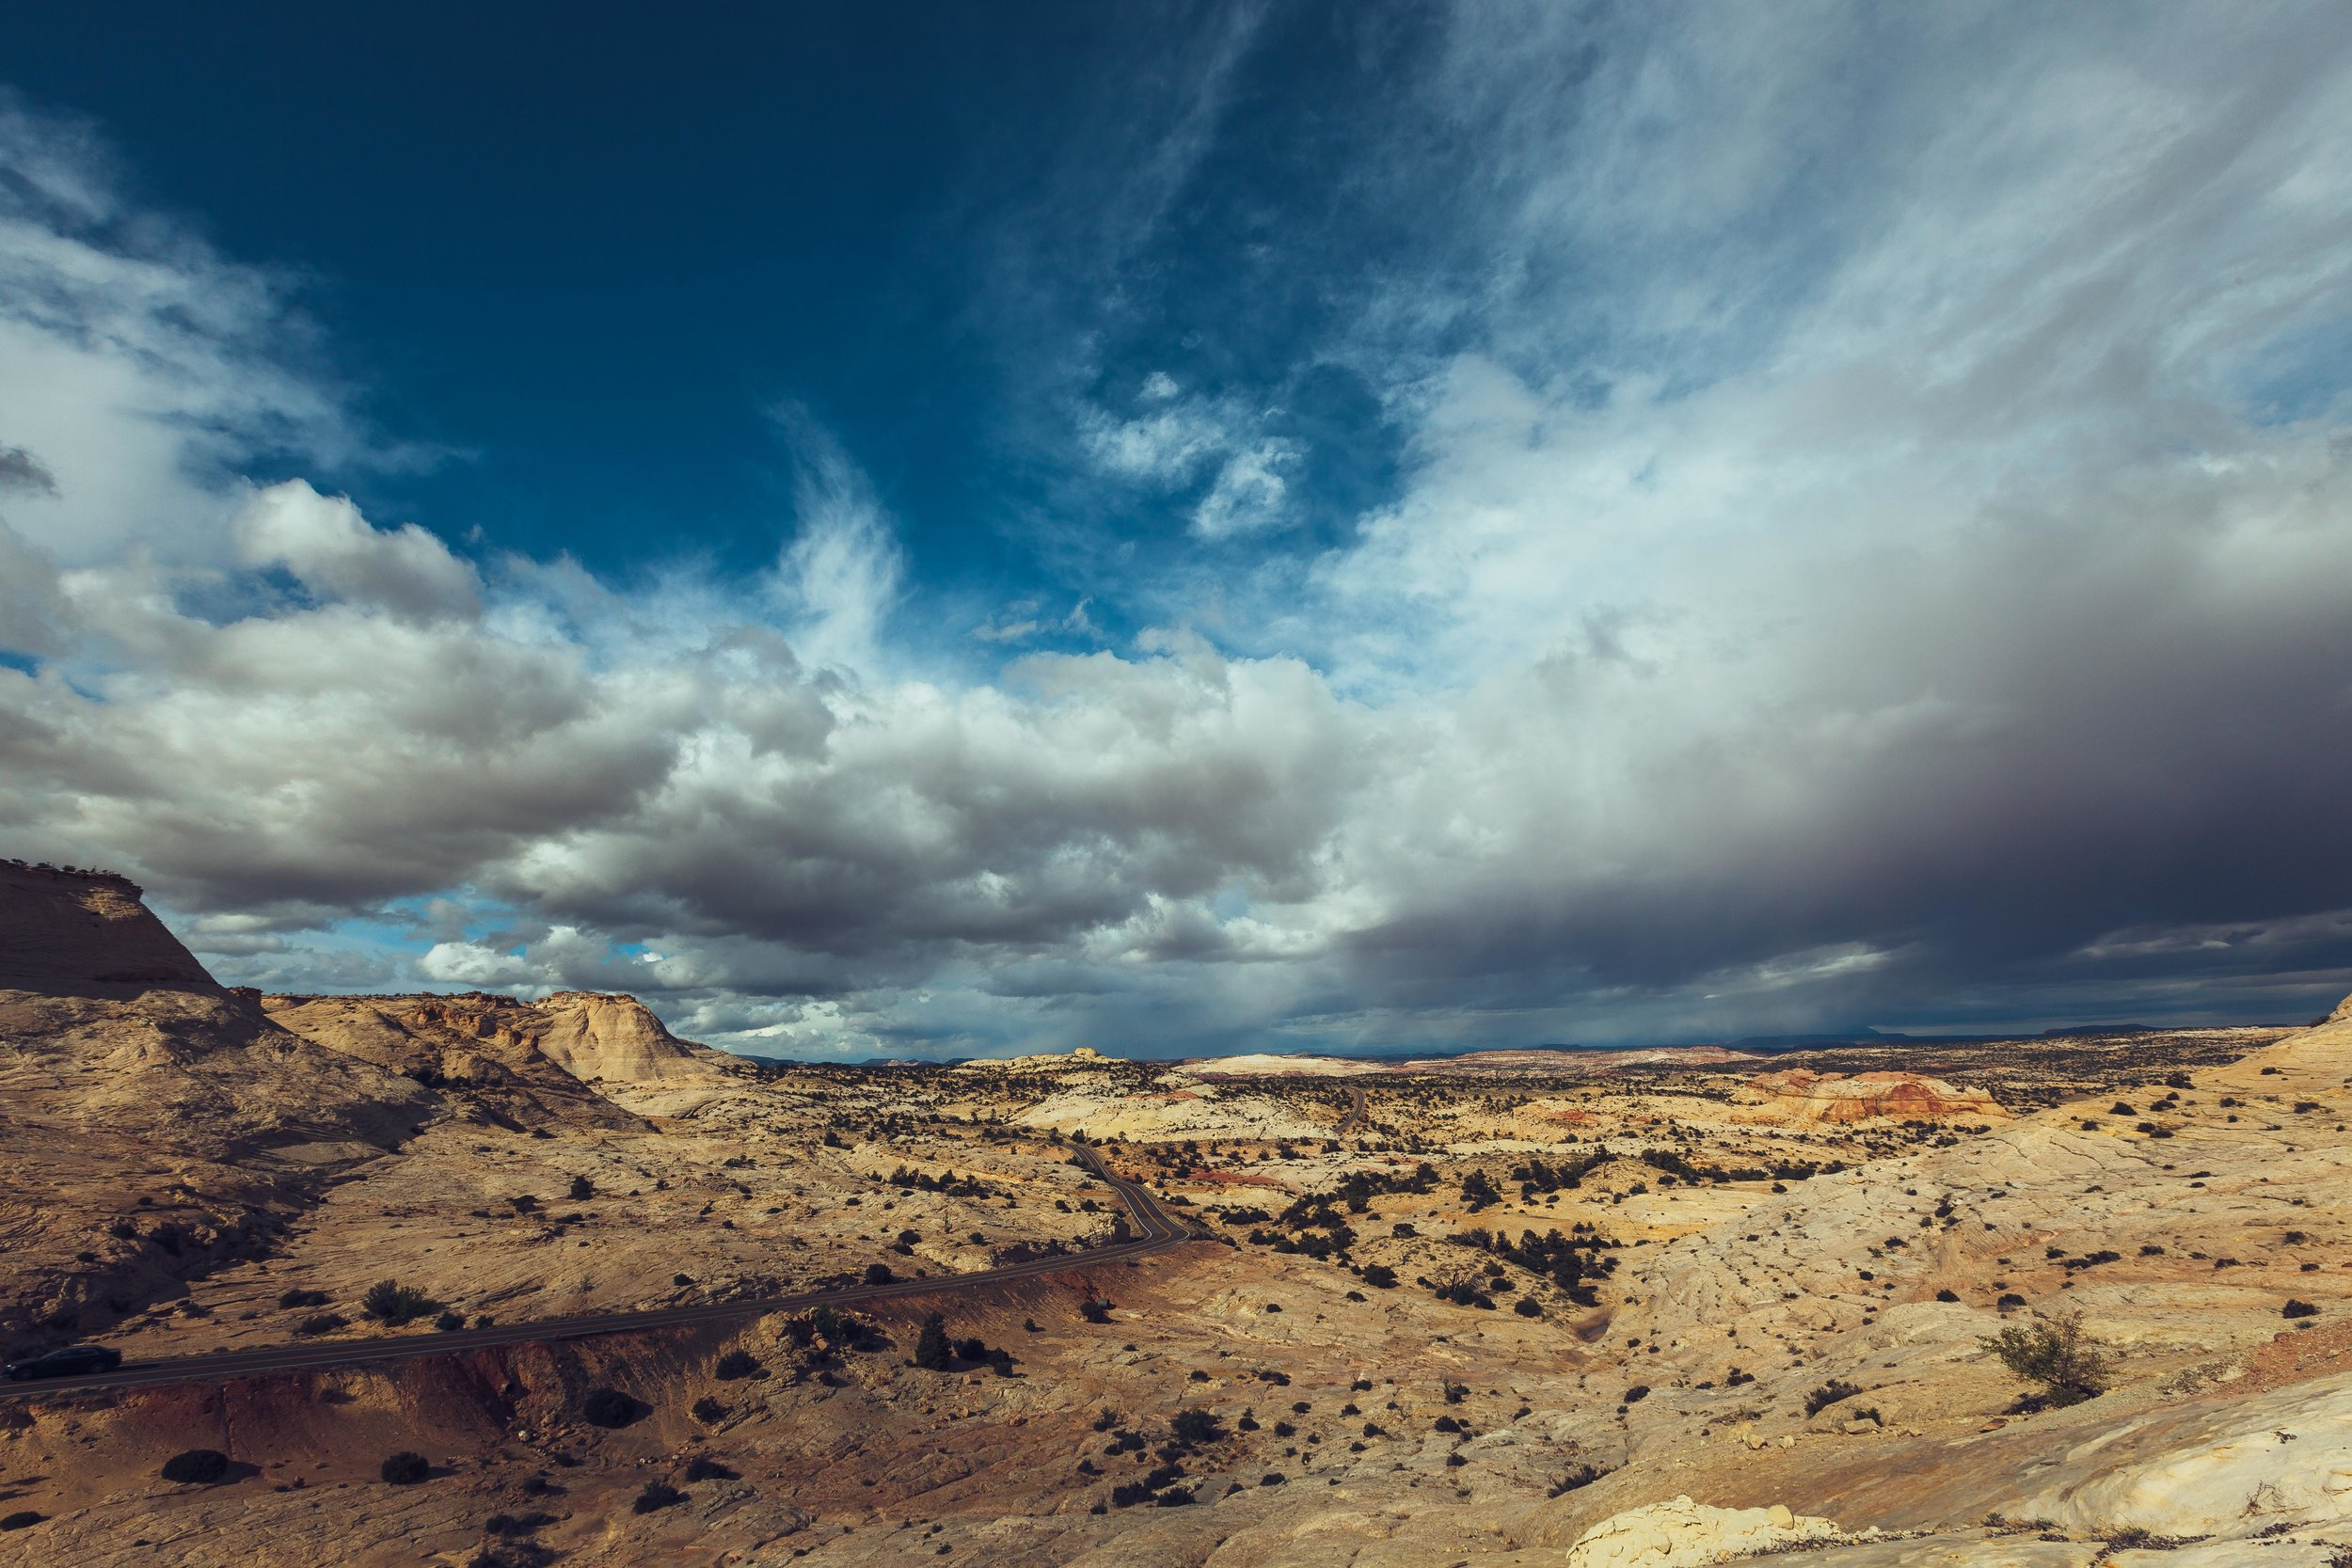 The Road to Capitol Reef National Park